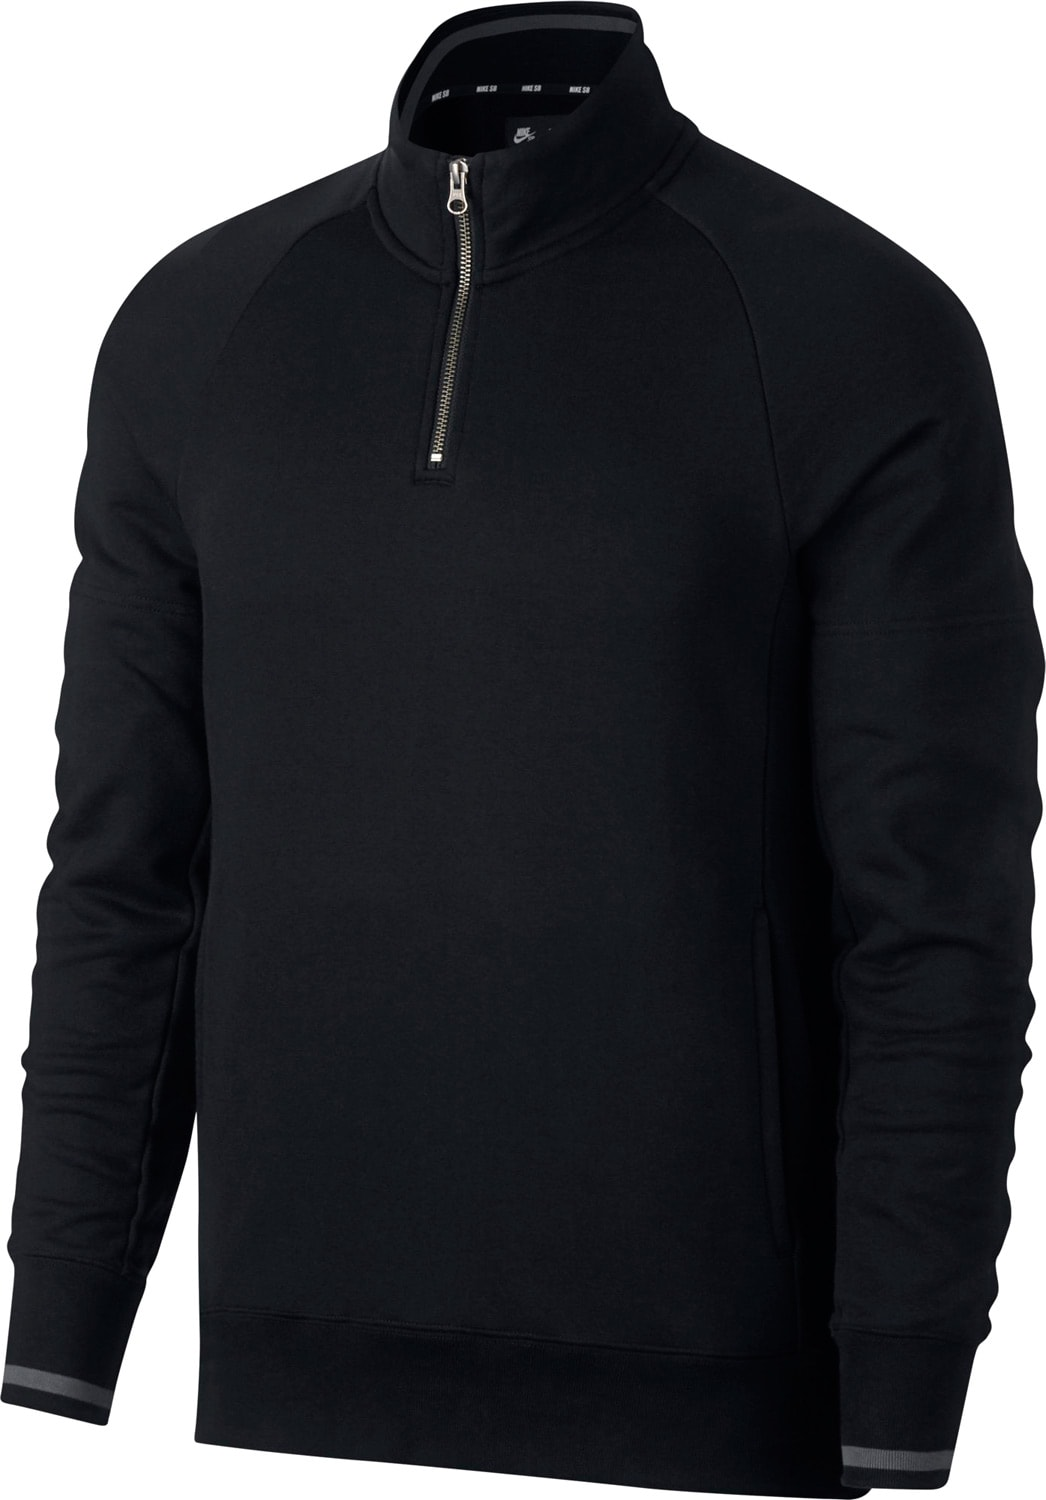 nike polar fleece 1/4 zip sweatshirt